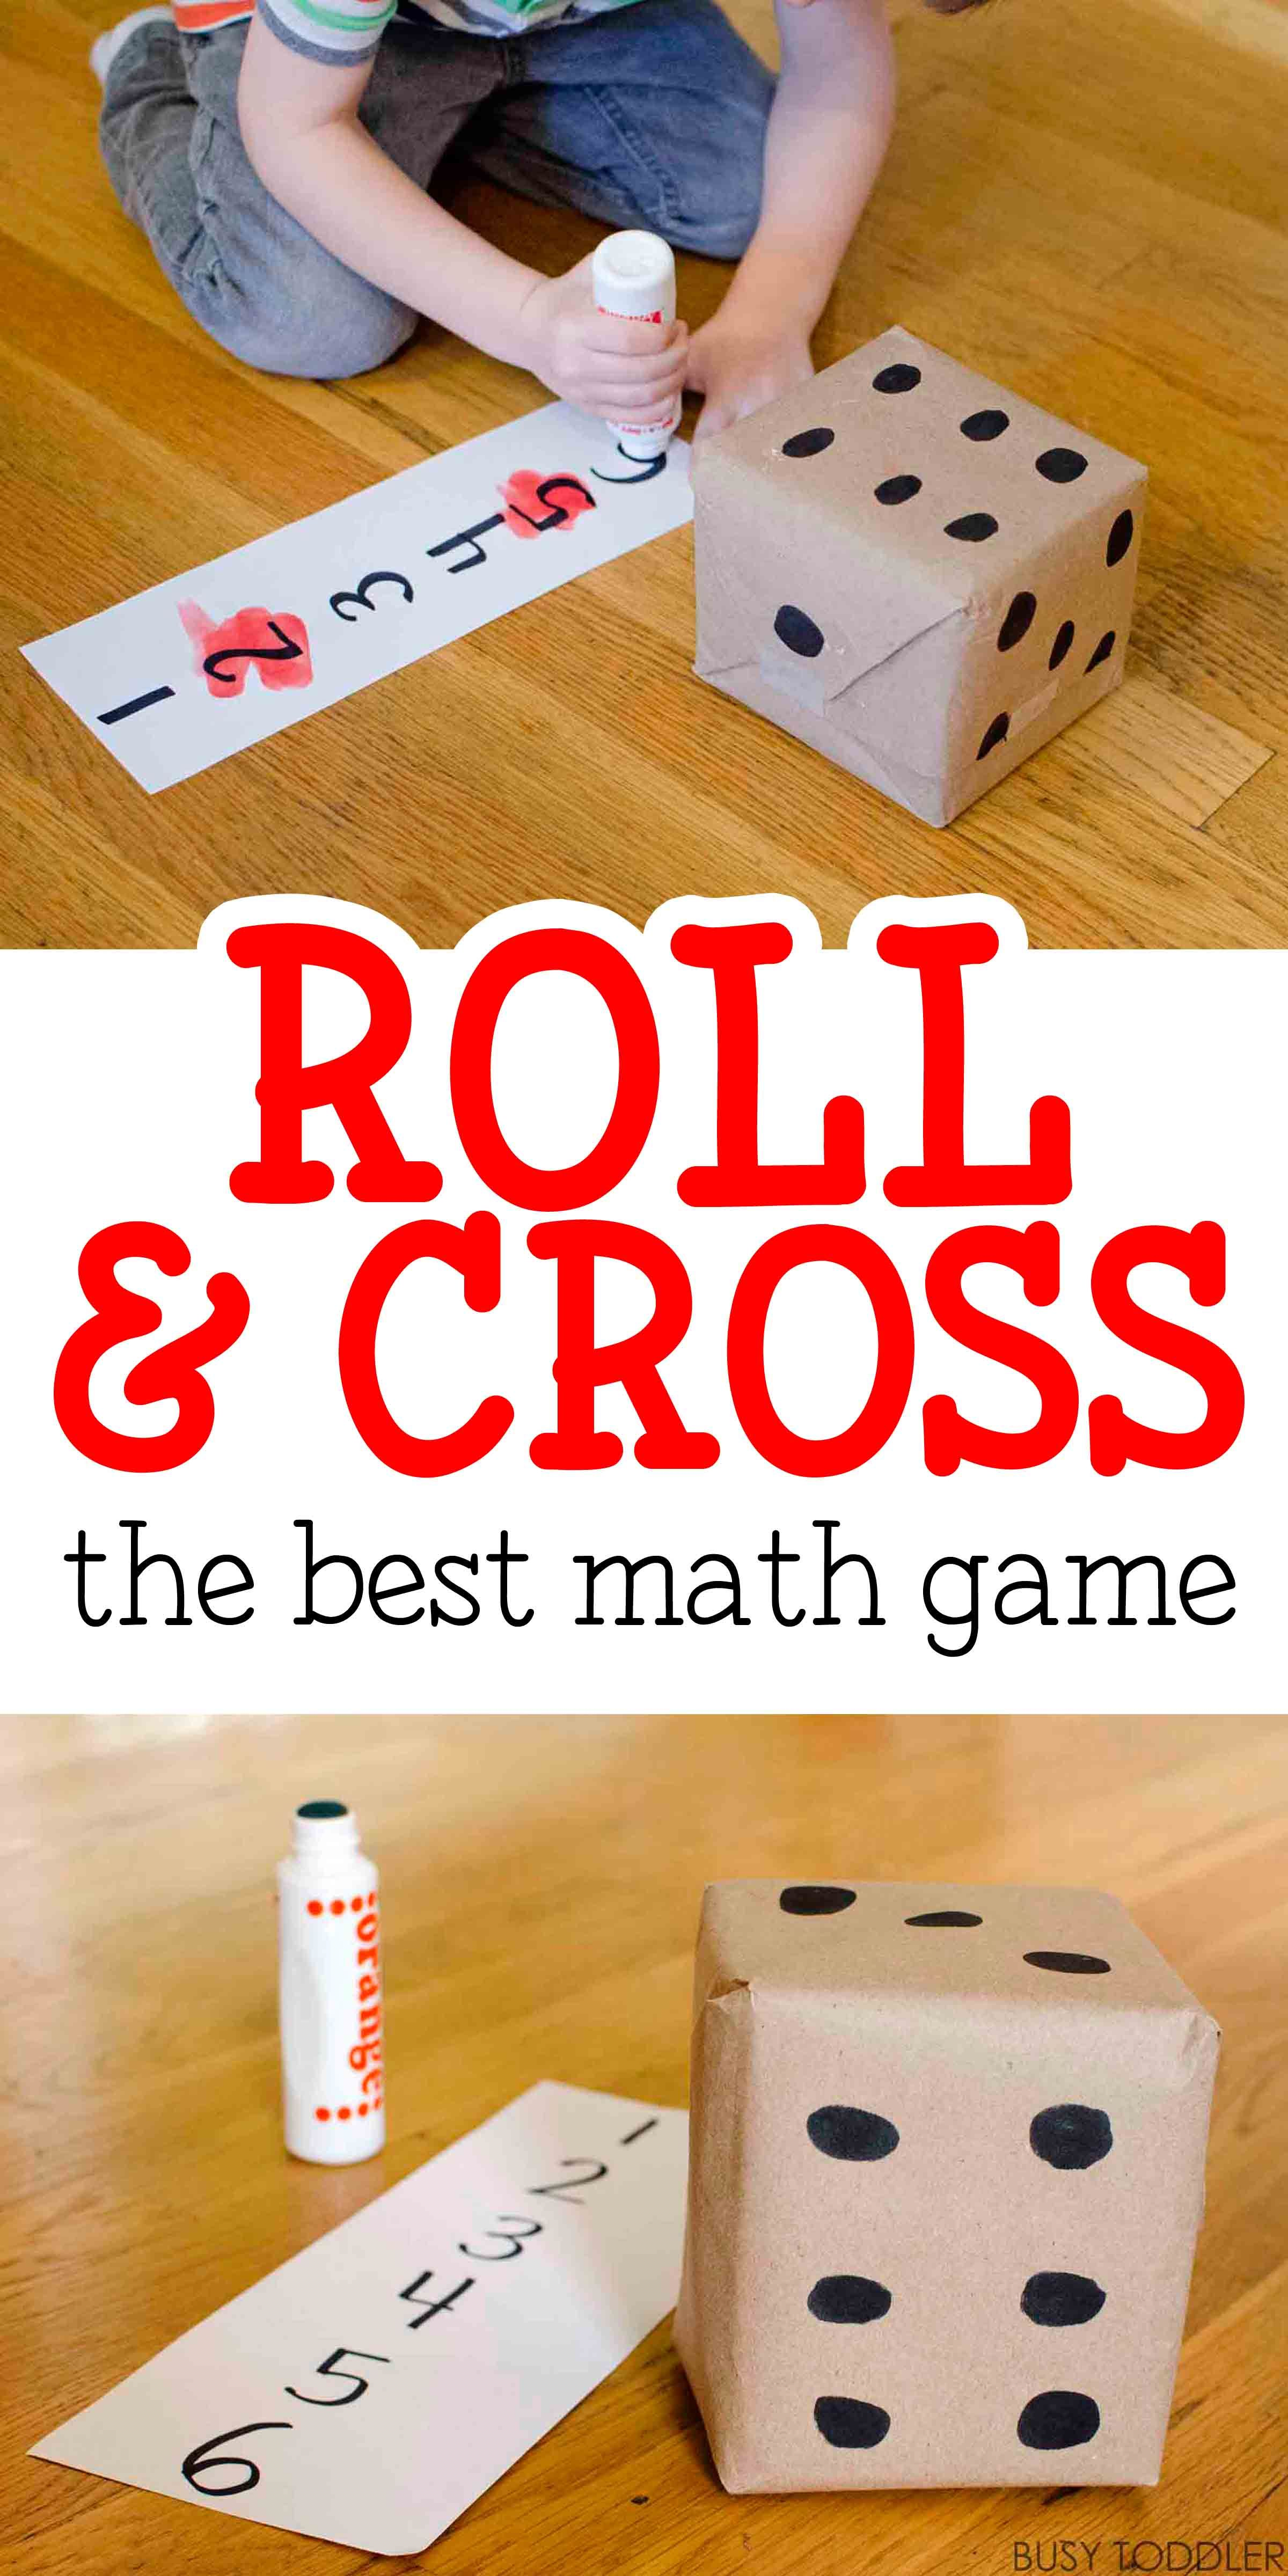 Roll & Cross Math Game | Pinterest | Easy math, Easy math games and ...